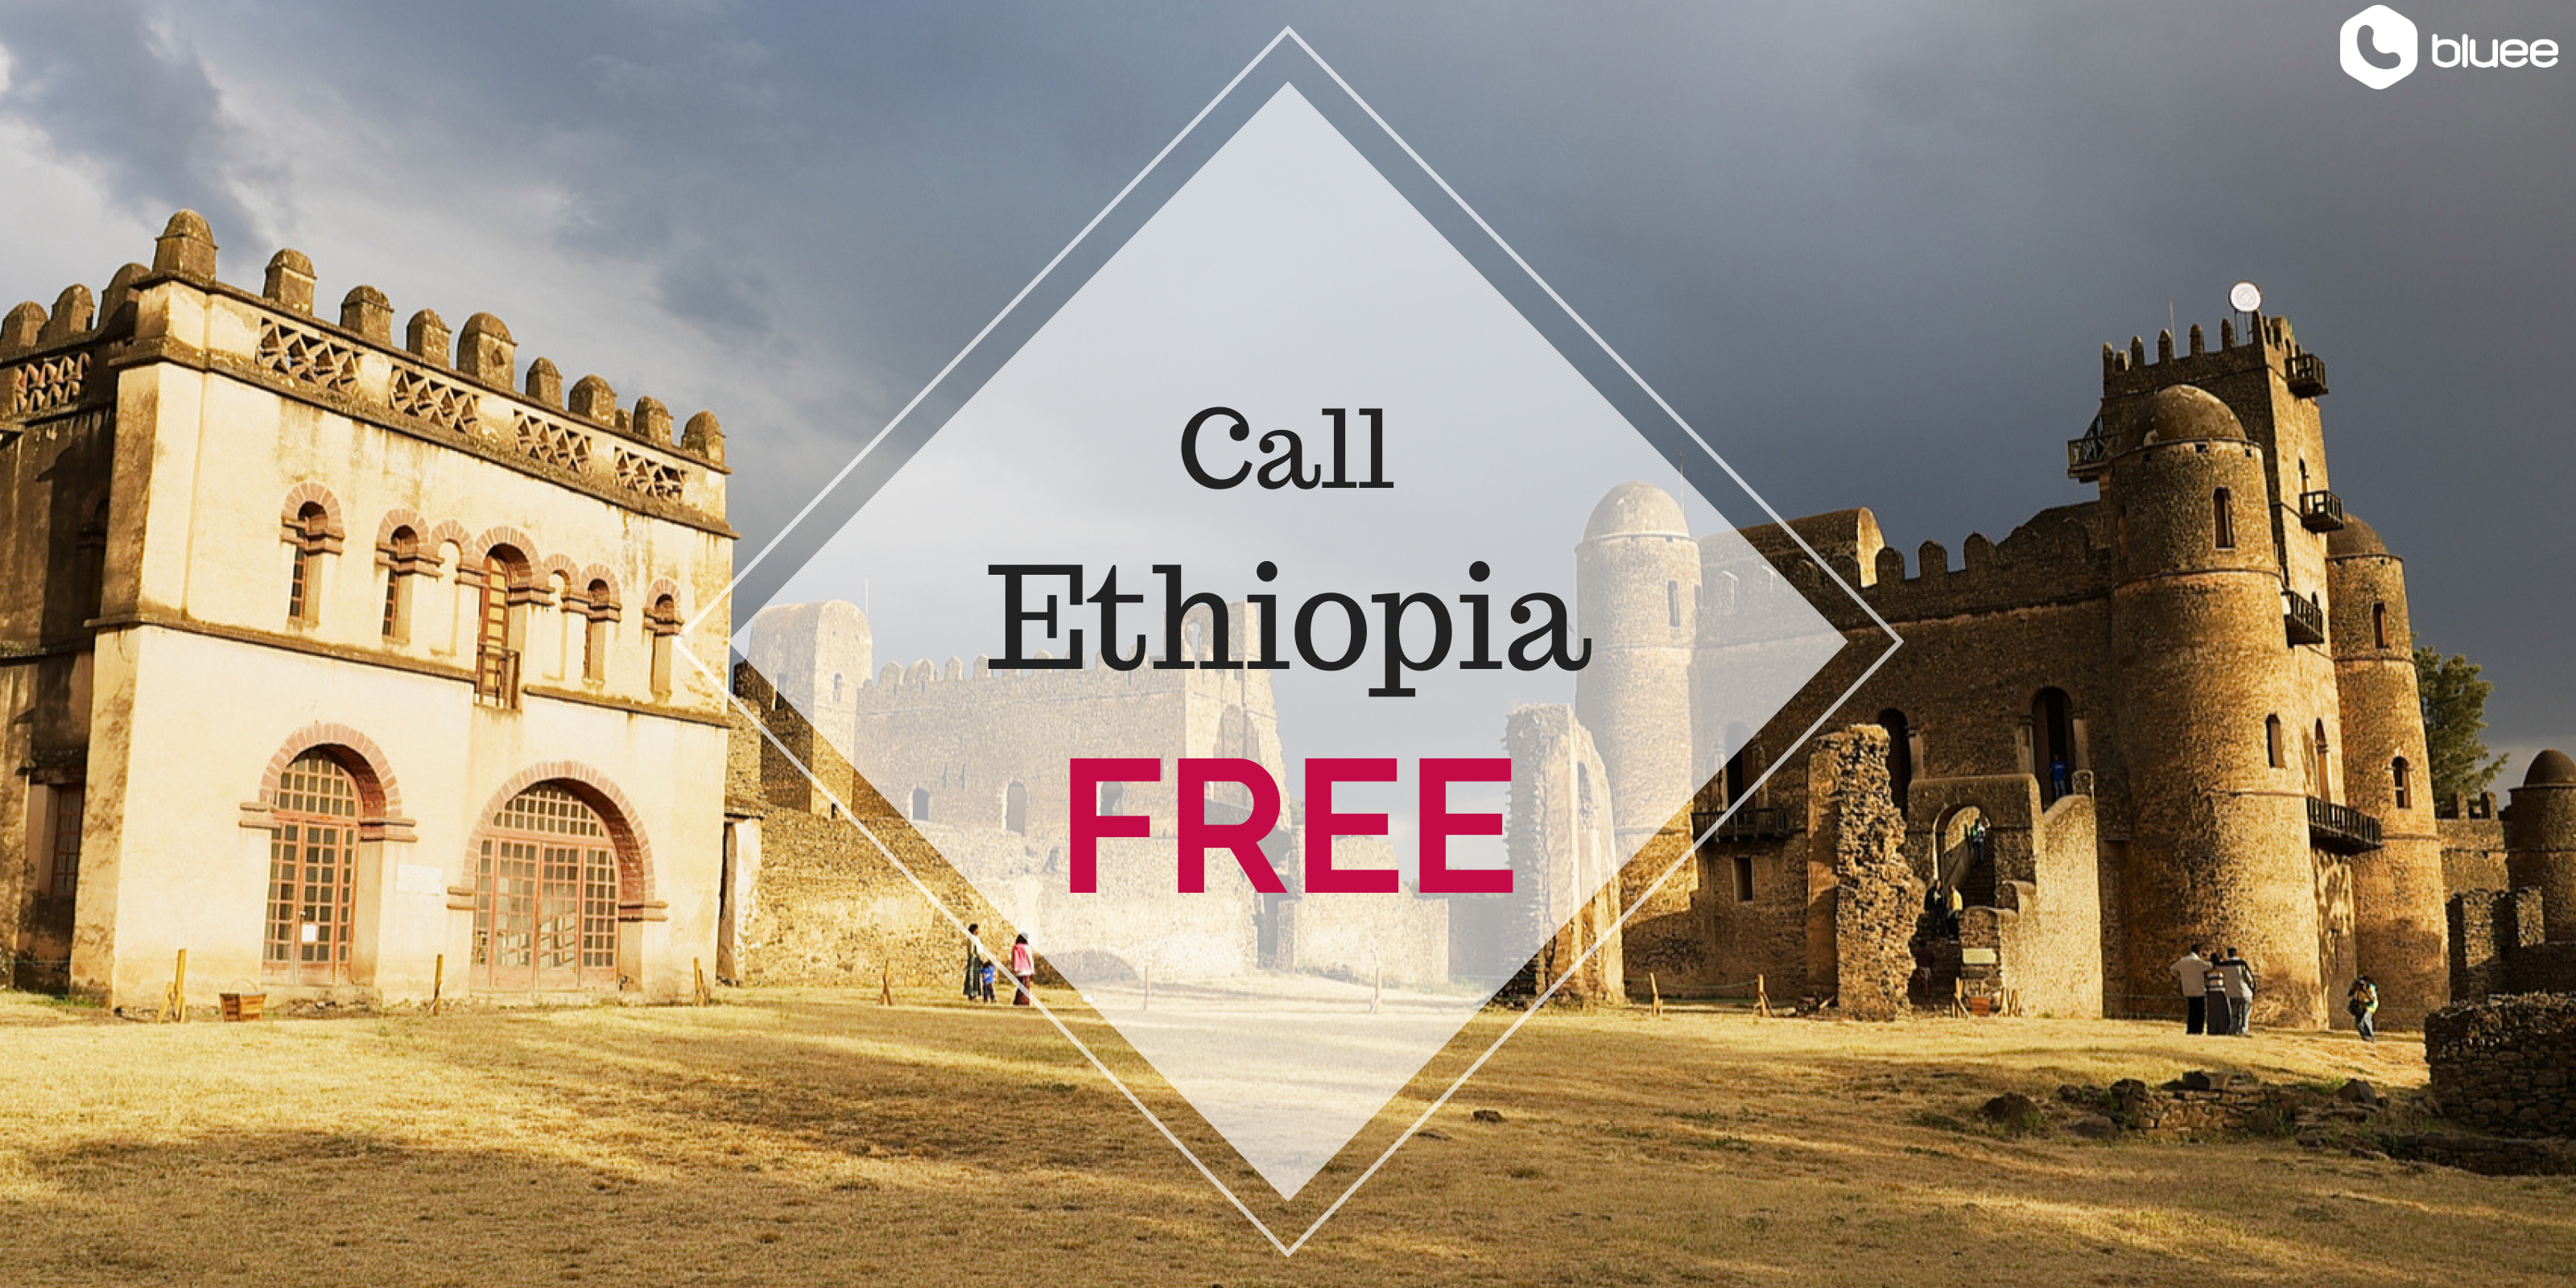 Free Thursday: Call Ethiopia For FREE!